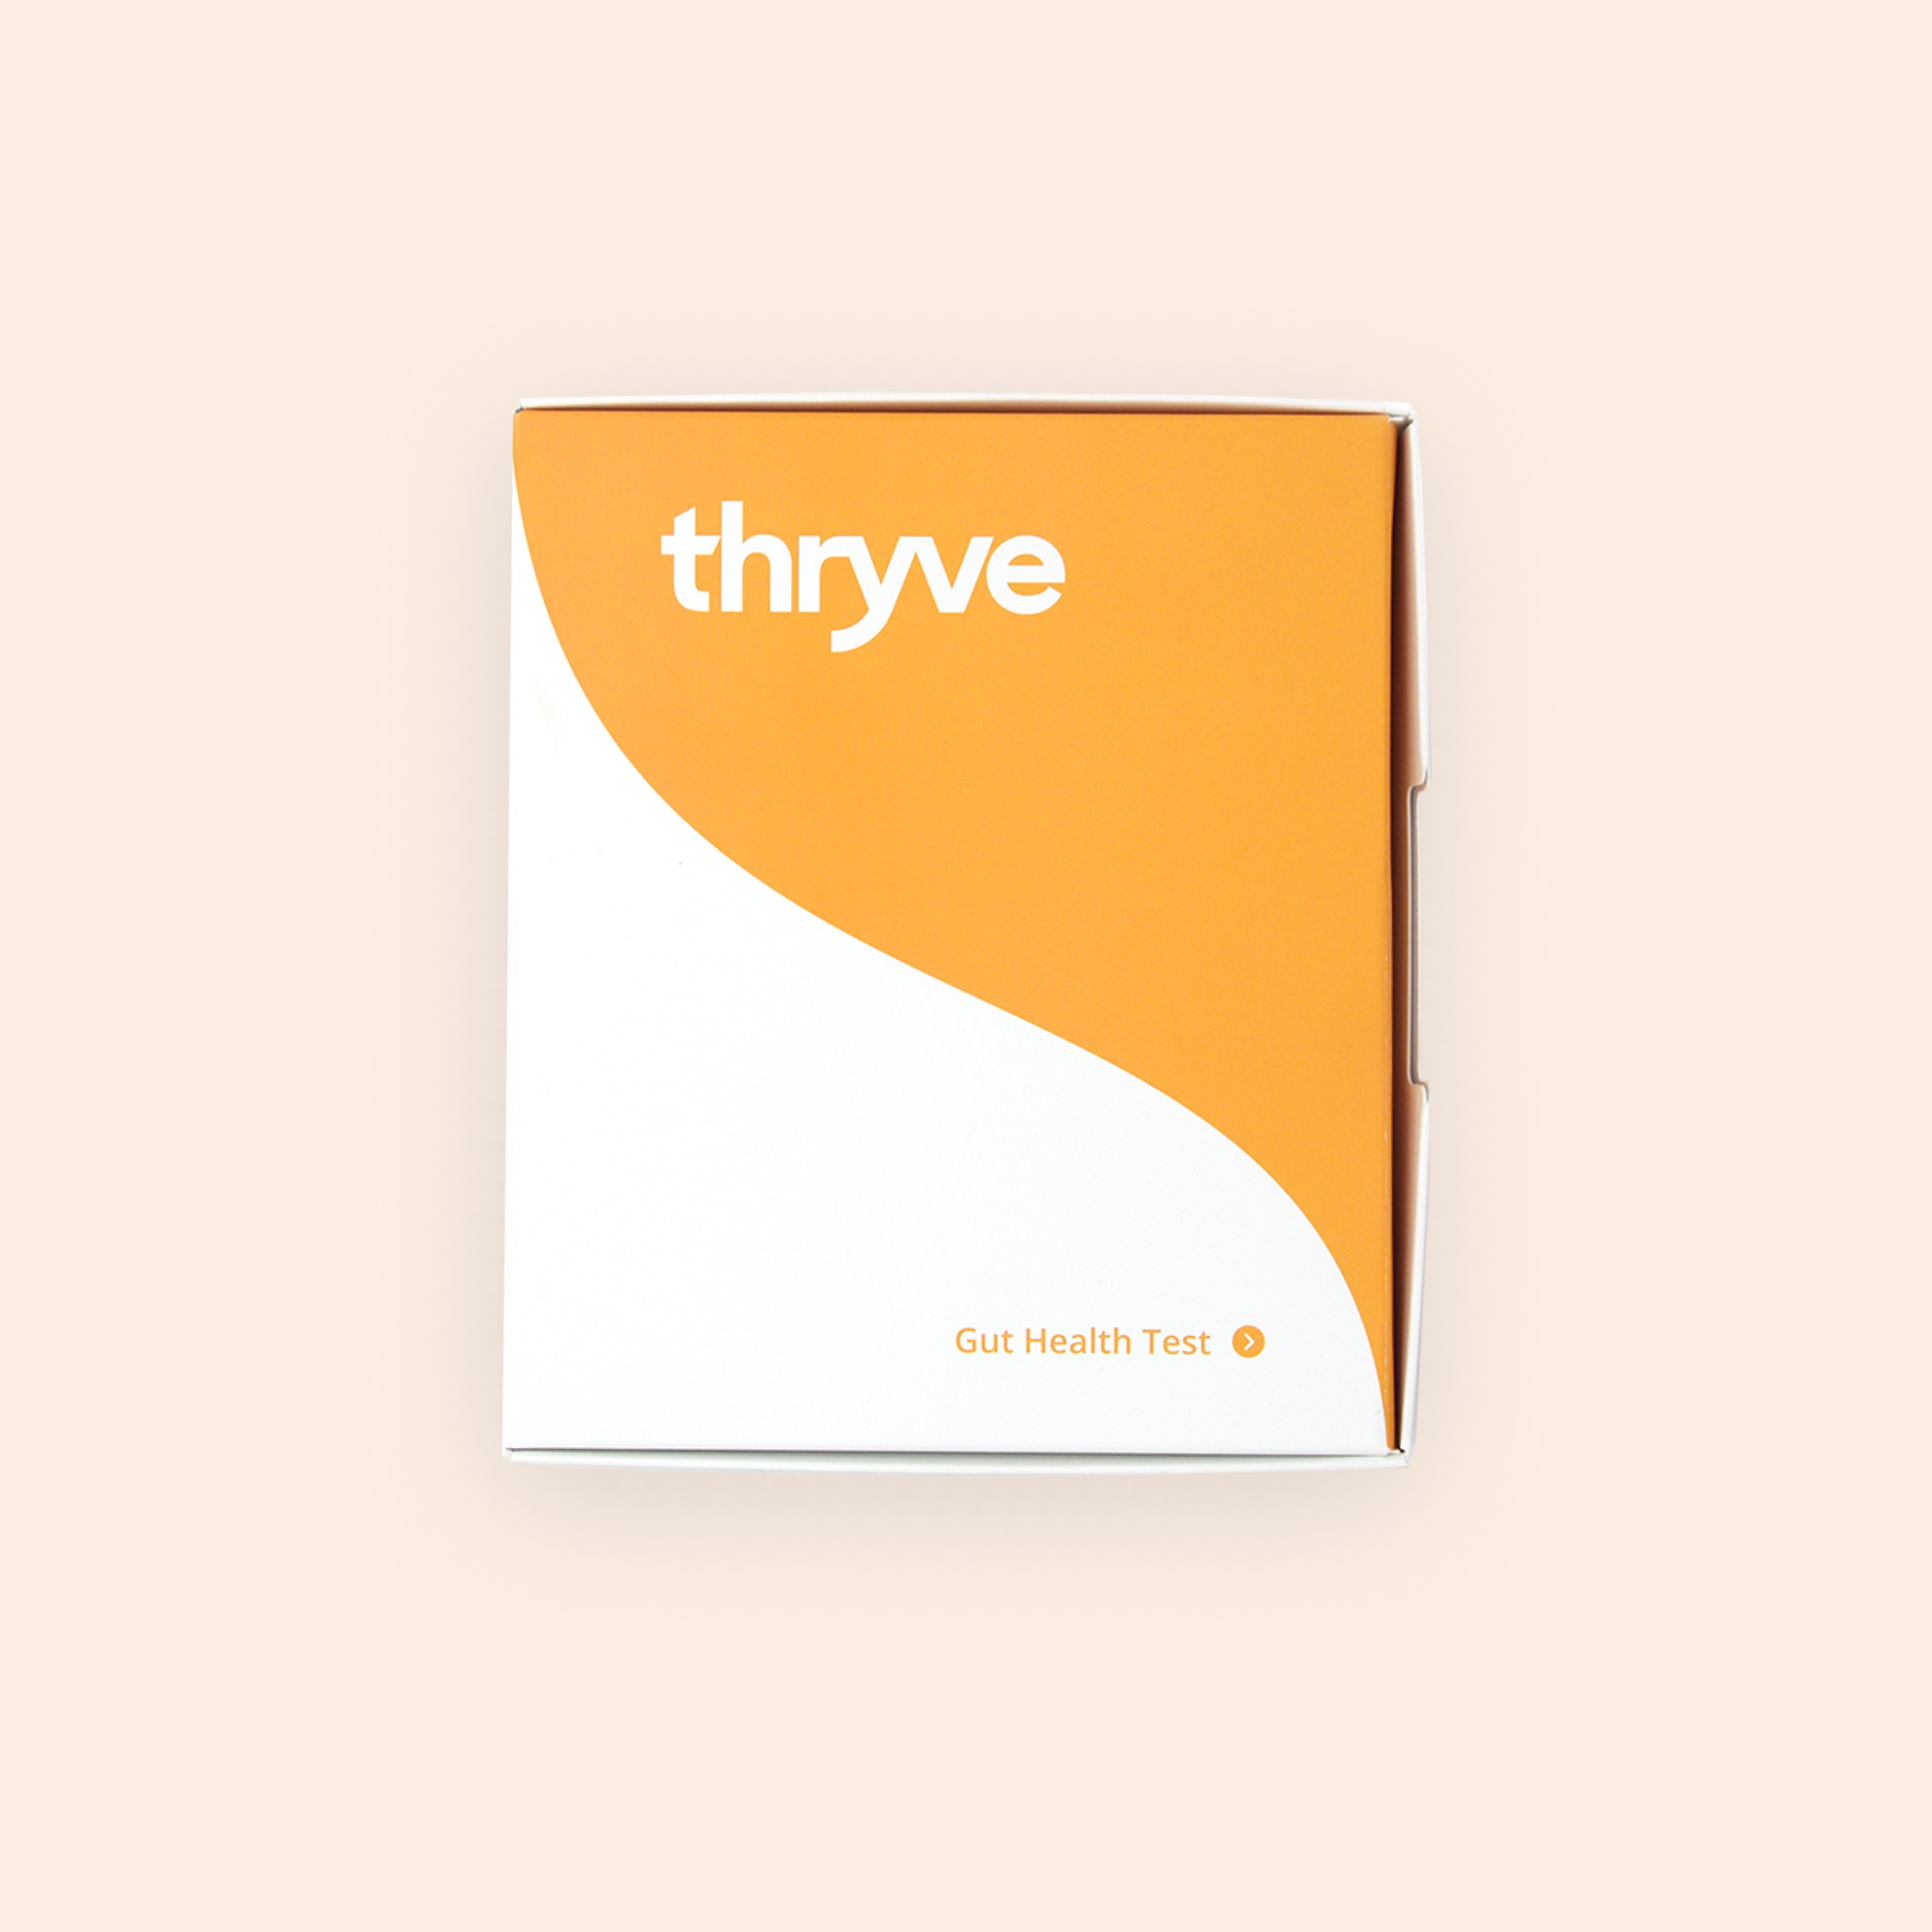 Thryve's Gut Health Test